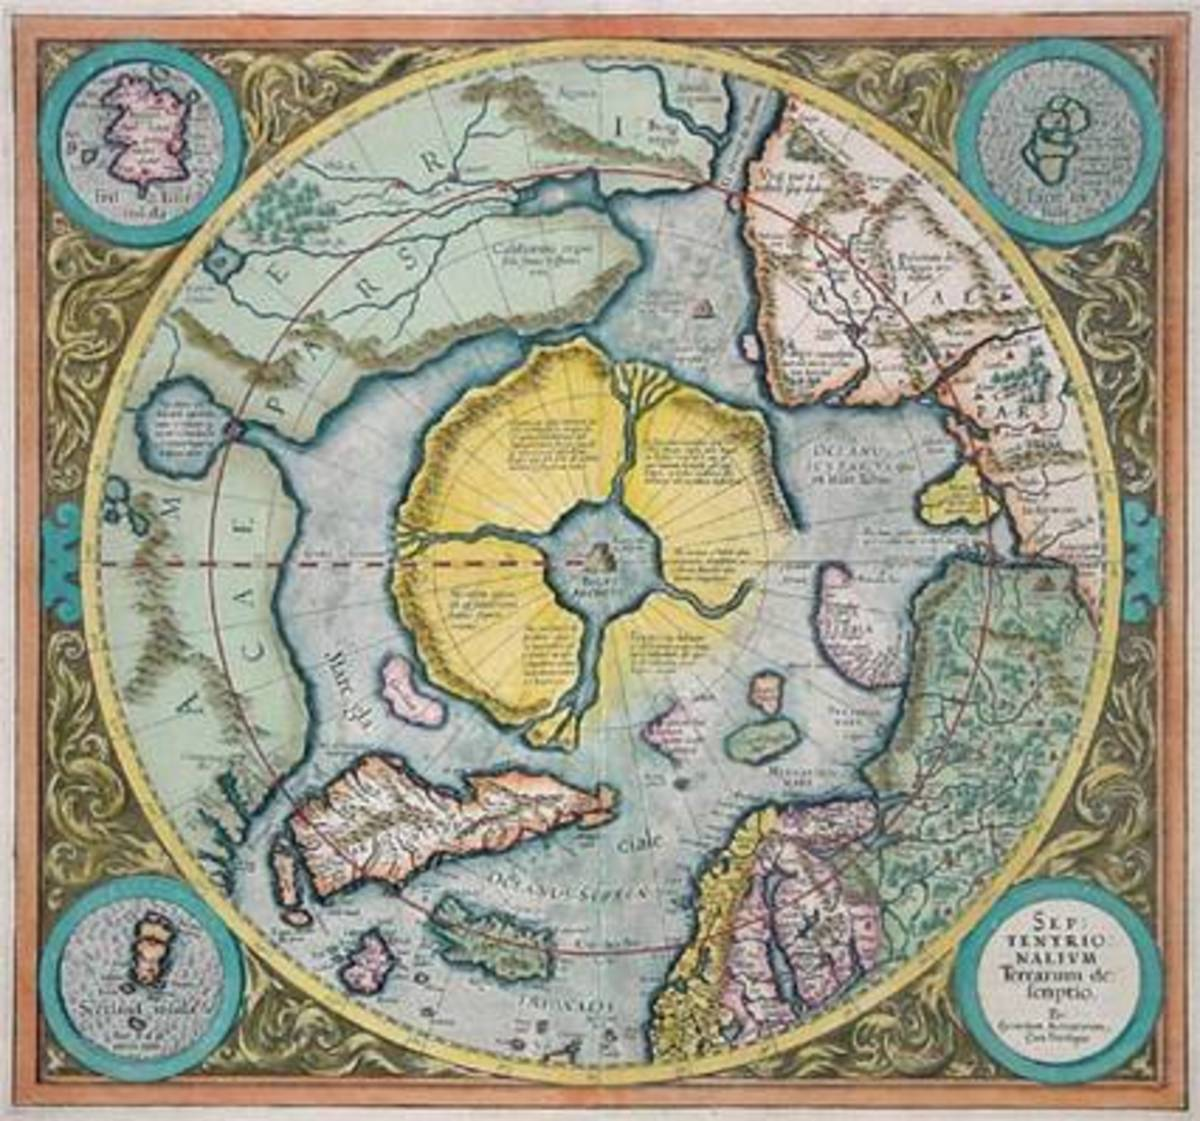 This map shows Agartha in the center with four rivers leading outwards, perhaps the true source of the Garden of Eden.